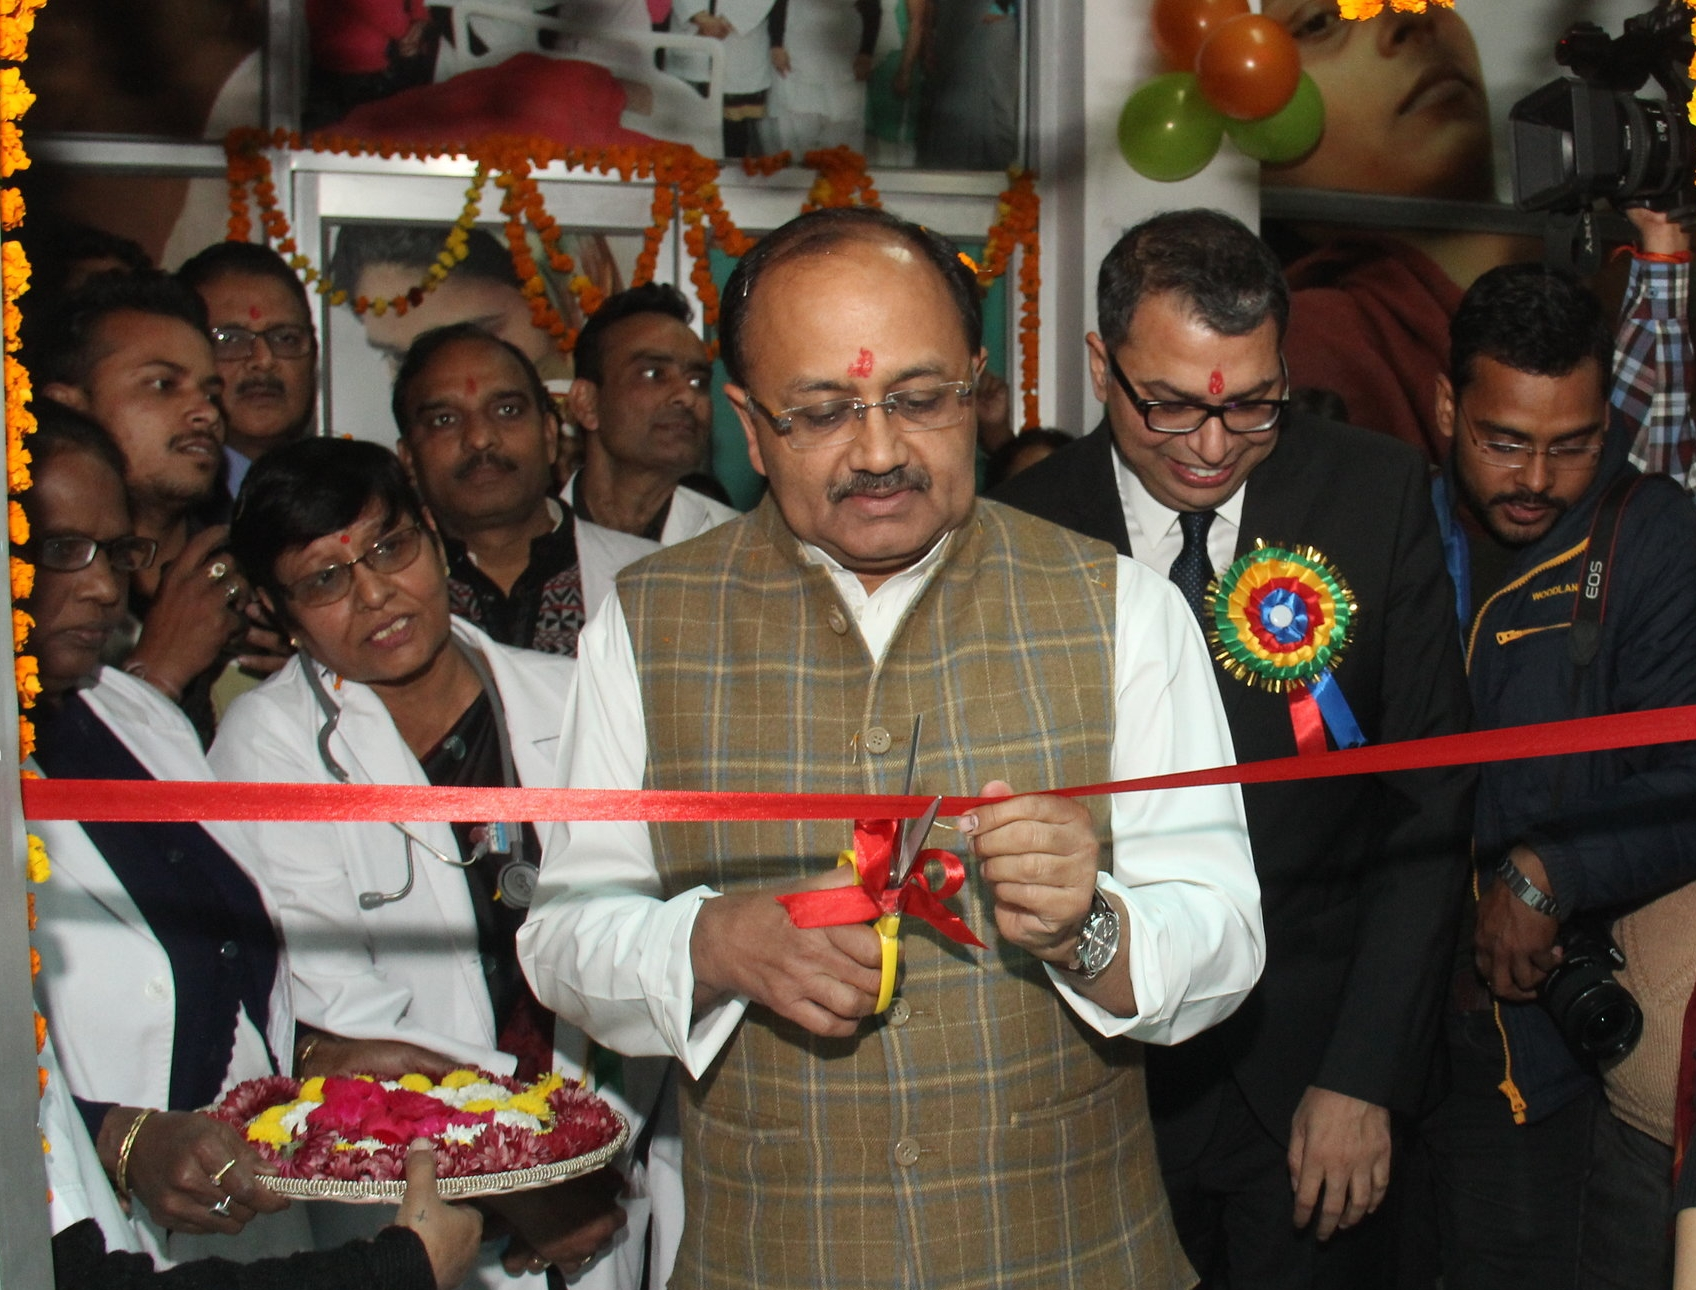 Inauguration of the new Kangaroo Care Lounge in Veerangana Avantibai Hospital, Lucknow by the Hon'ble Minister for Health Shri Sidharth Nath Singh, on 28th Dec 2017.